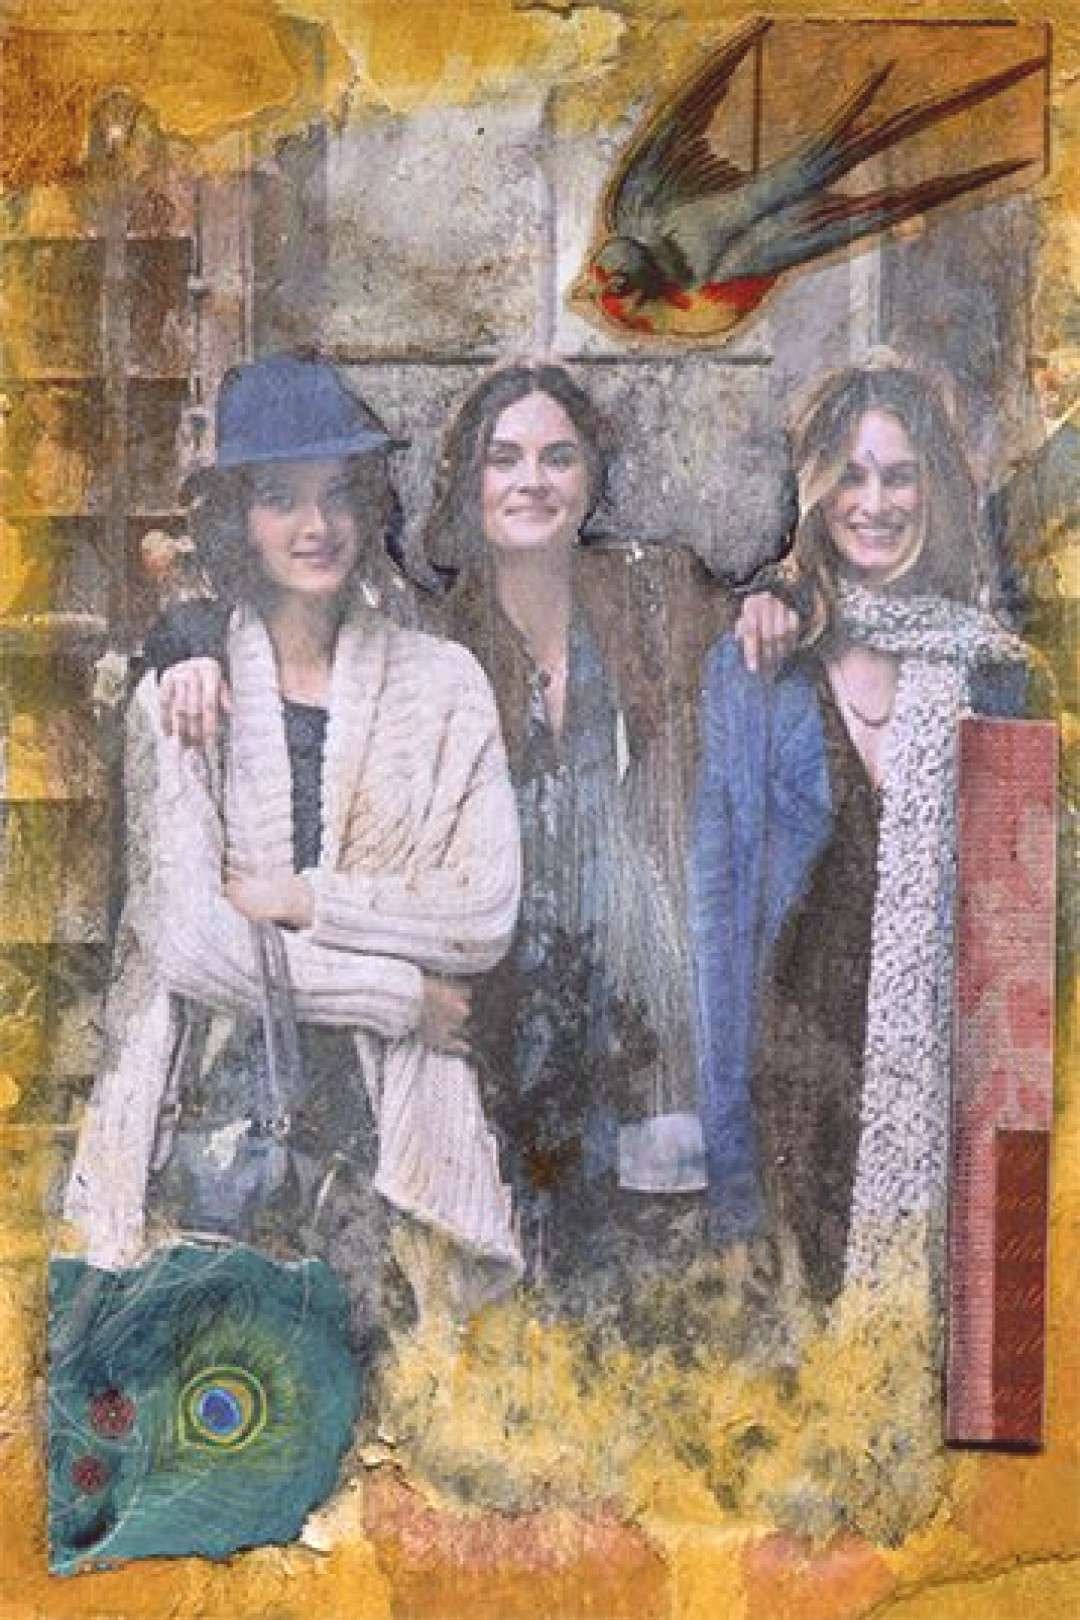 Collage Friends by Shellie Lewis, 5